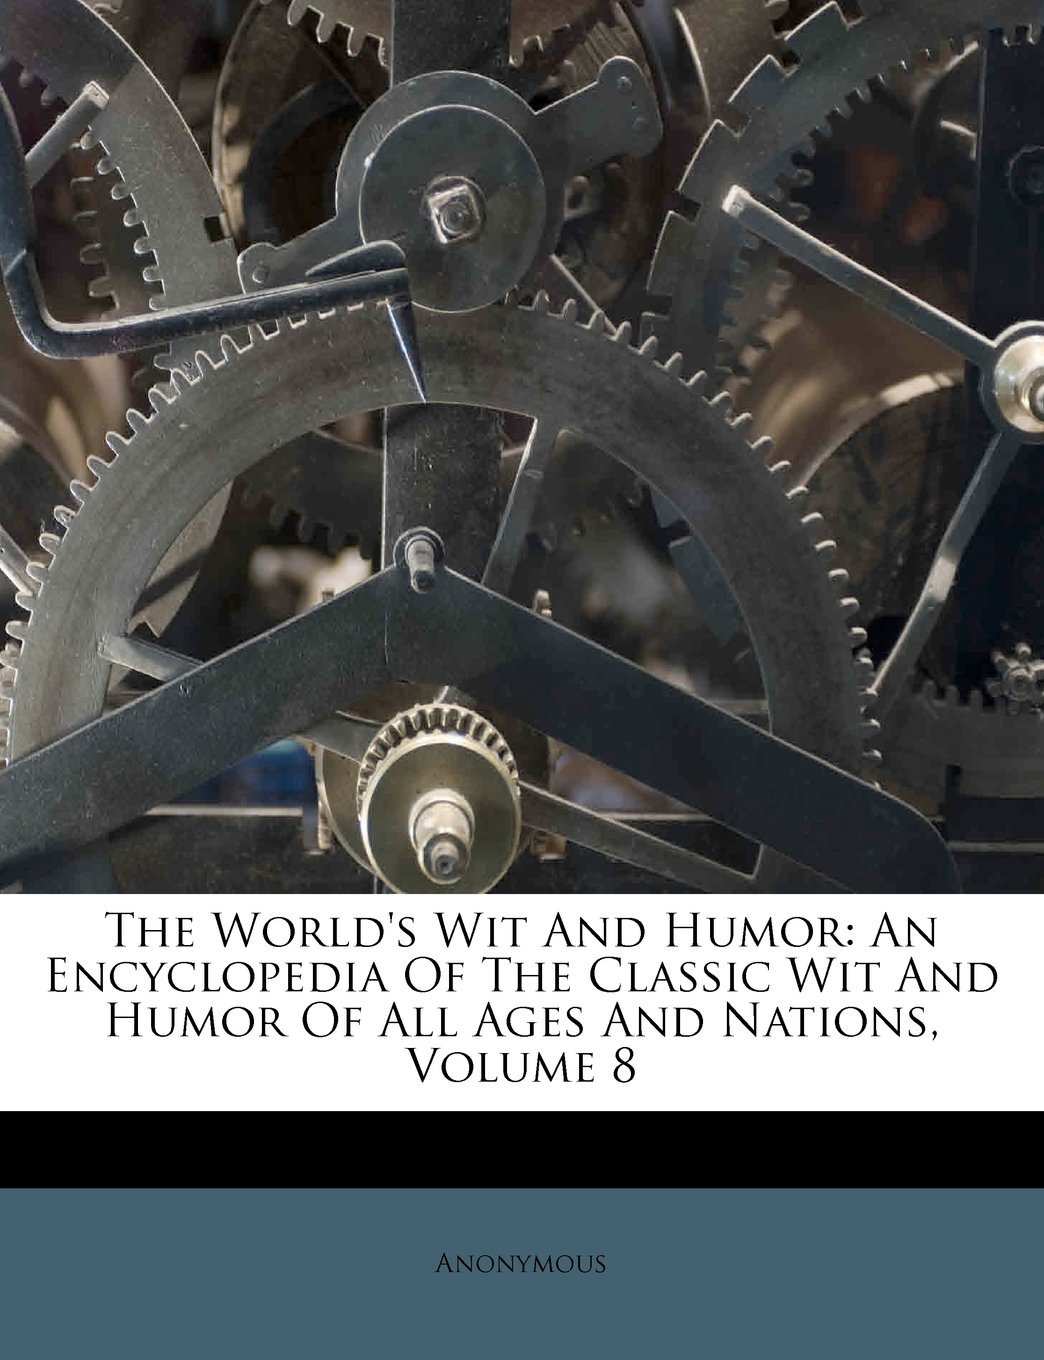 the-world-s-wit-and-humor-an-encyclopedia-of-the-classic-wit-and-humor-of-all-ages-and-nations-volume-8